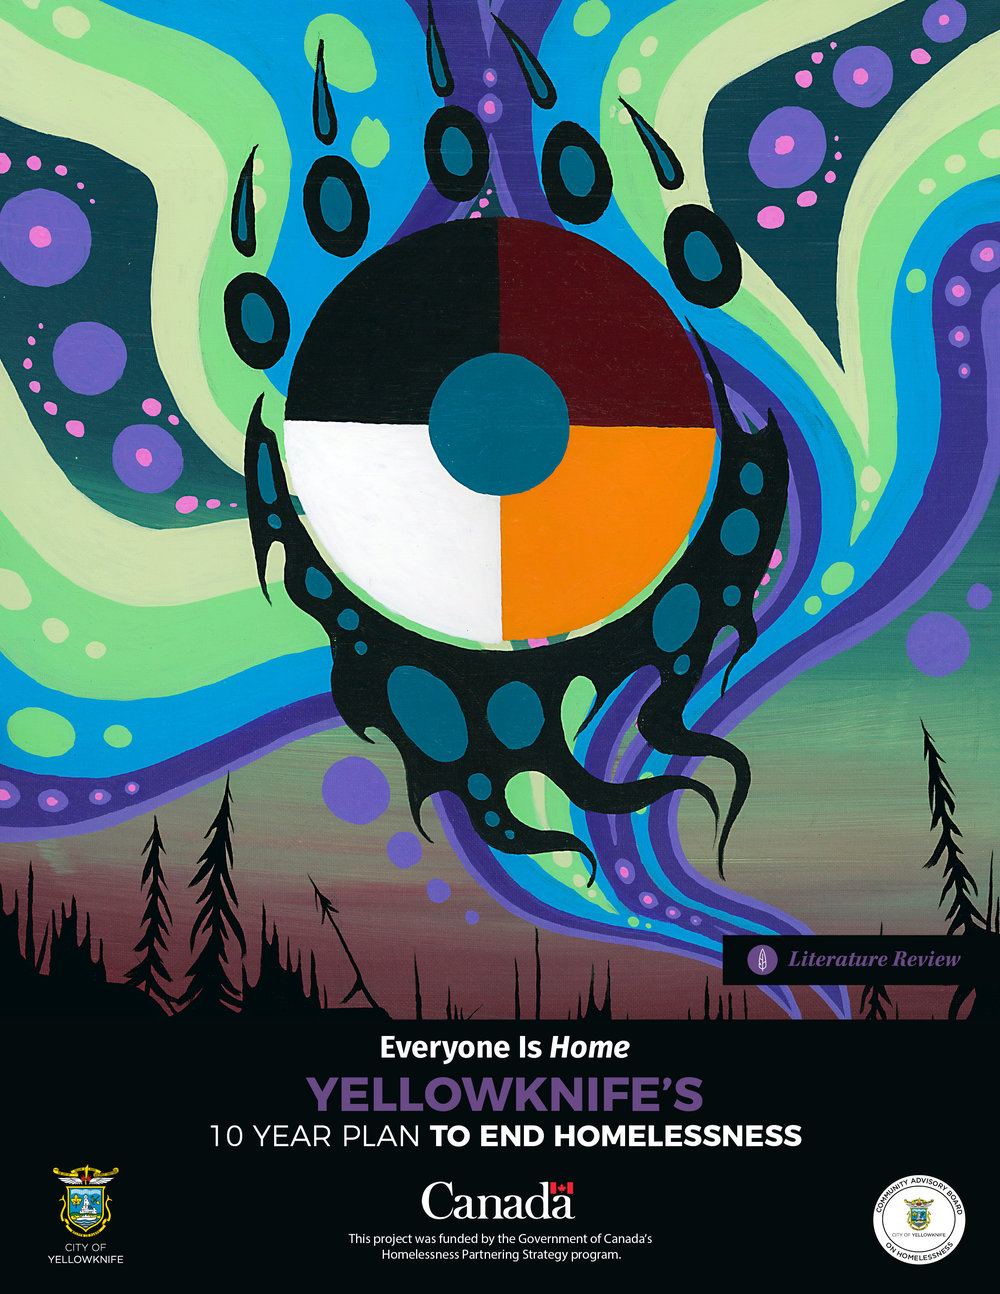 Yellowknife Plan to End Homelessness - Working with community leaders, we helped the city develop its strategy to end homelessness embedding the prioritization of Reconciliation and healing. This ambitious plan sets Yellowknifers on a tailored path to address local priorities and develop innovative approaches to complex social issues in Canada's North.Download Report